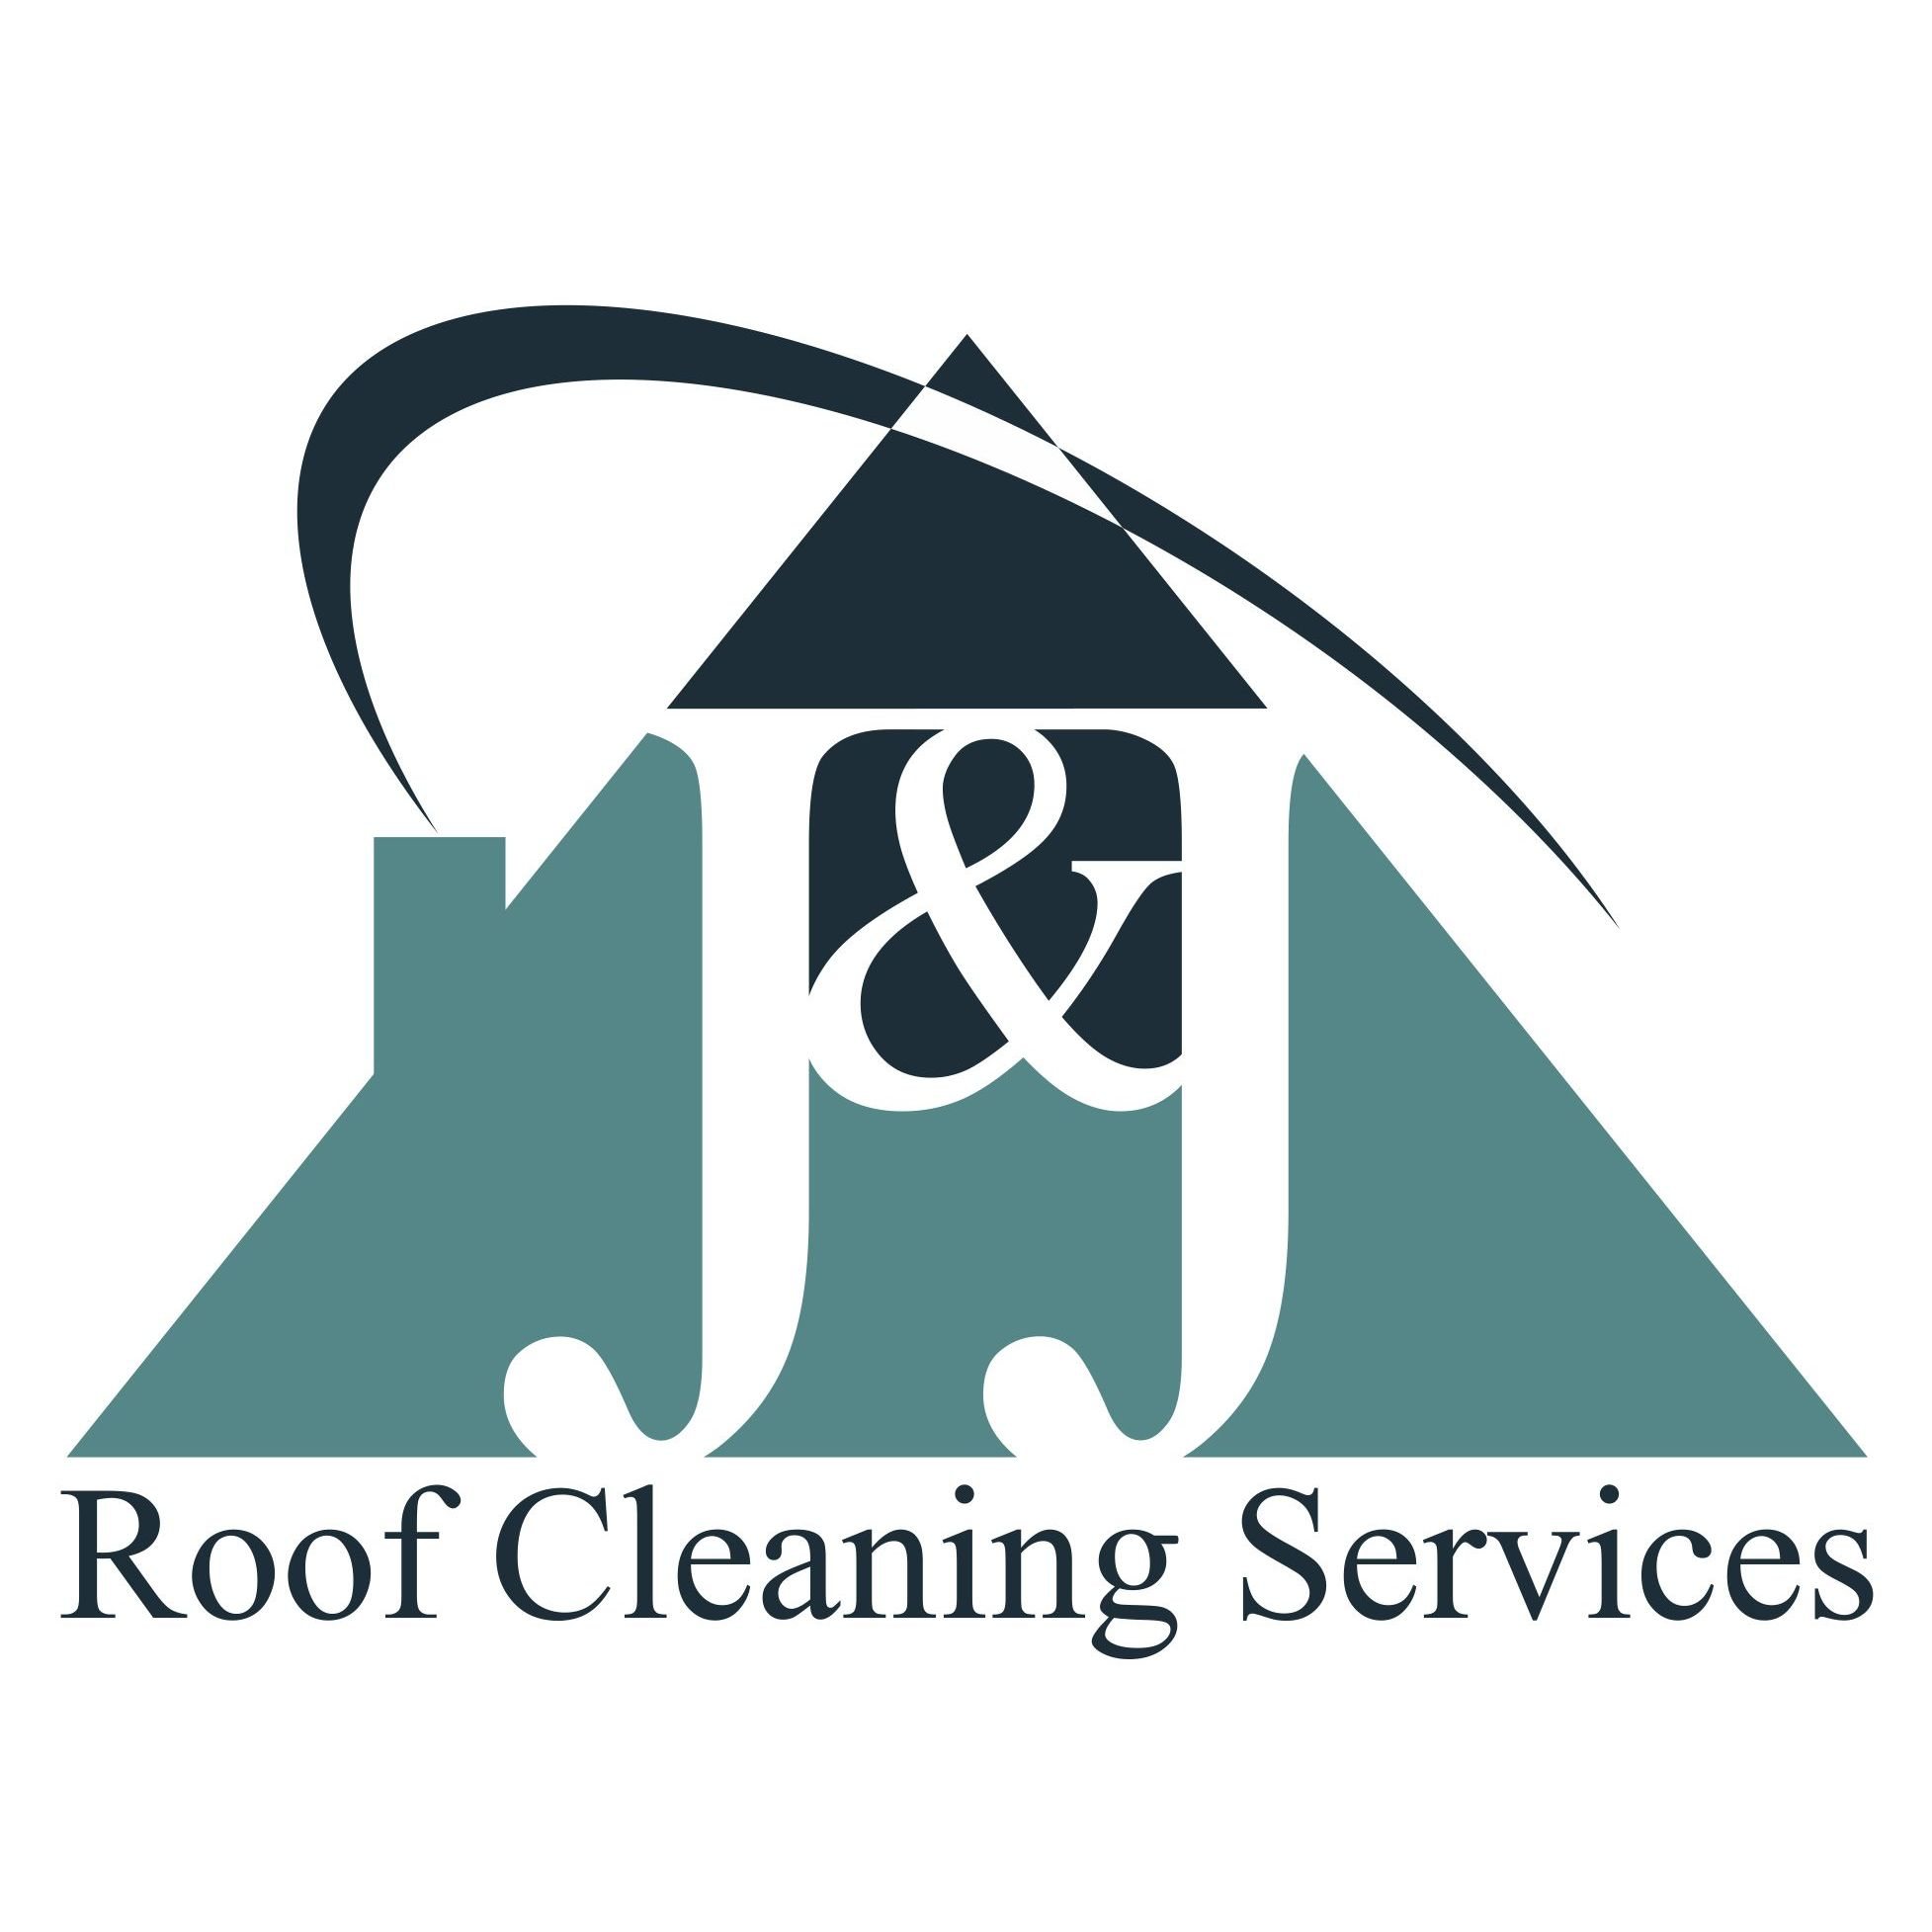 J&J roof cleaning services - Everett, WA - Roofing Contractors